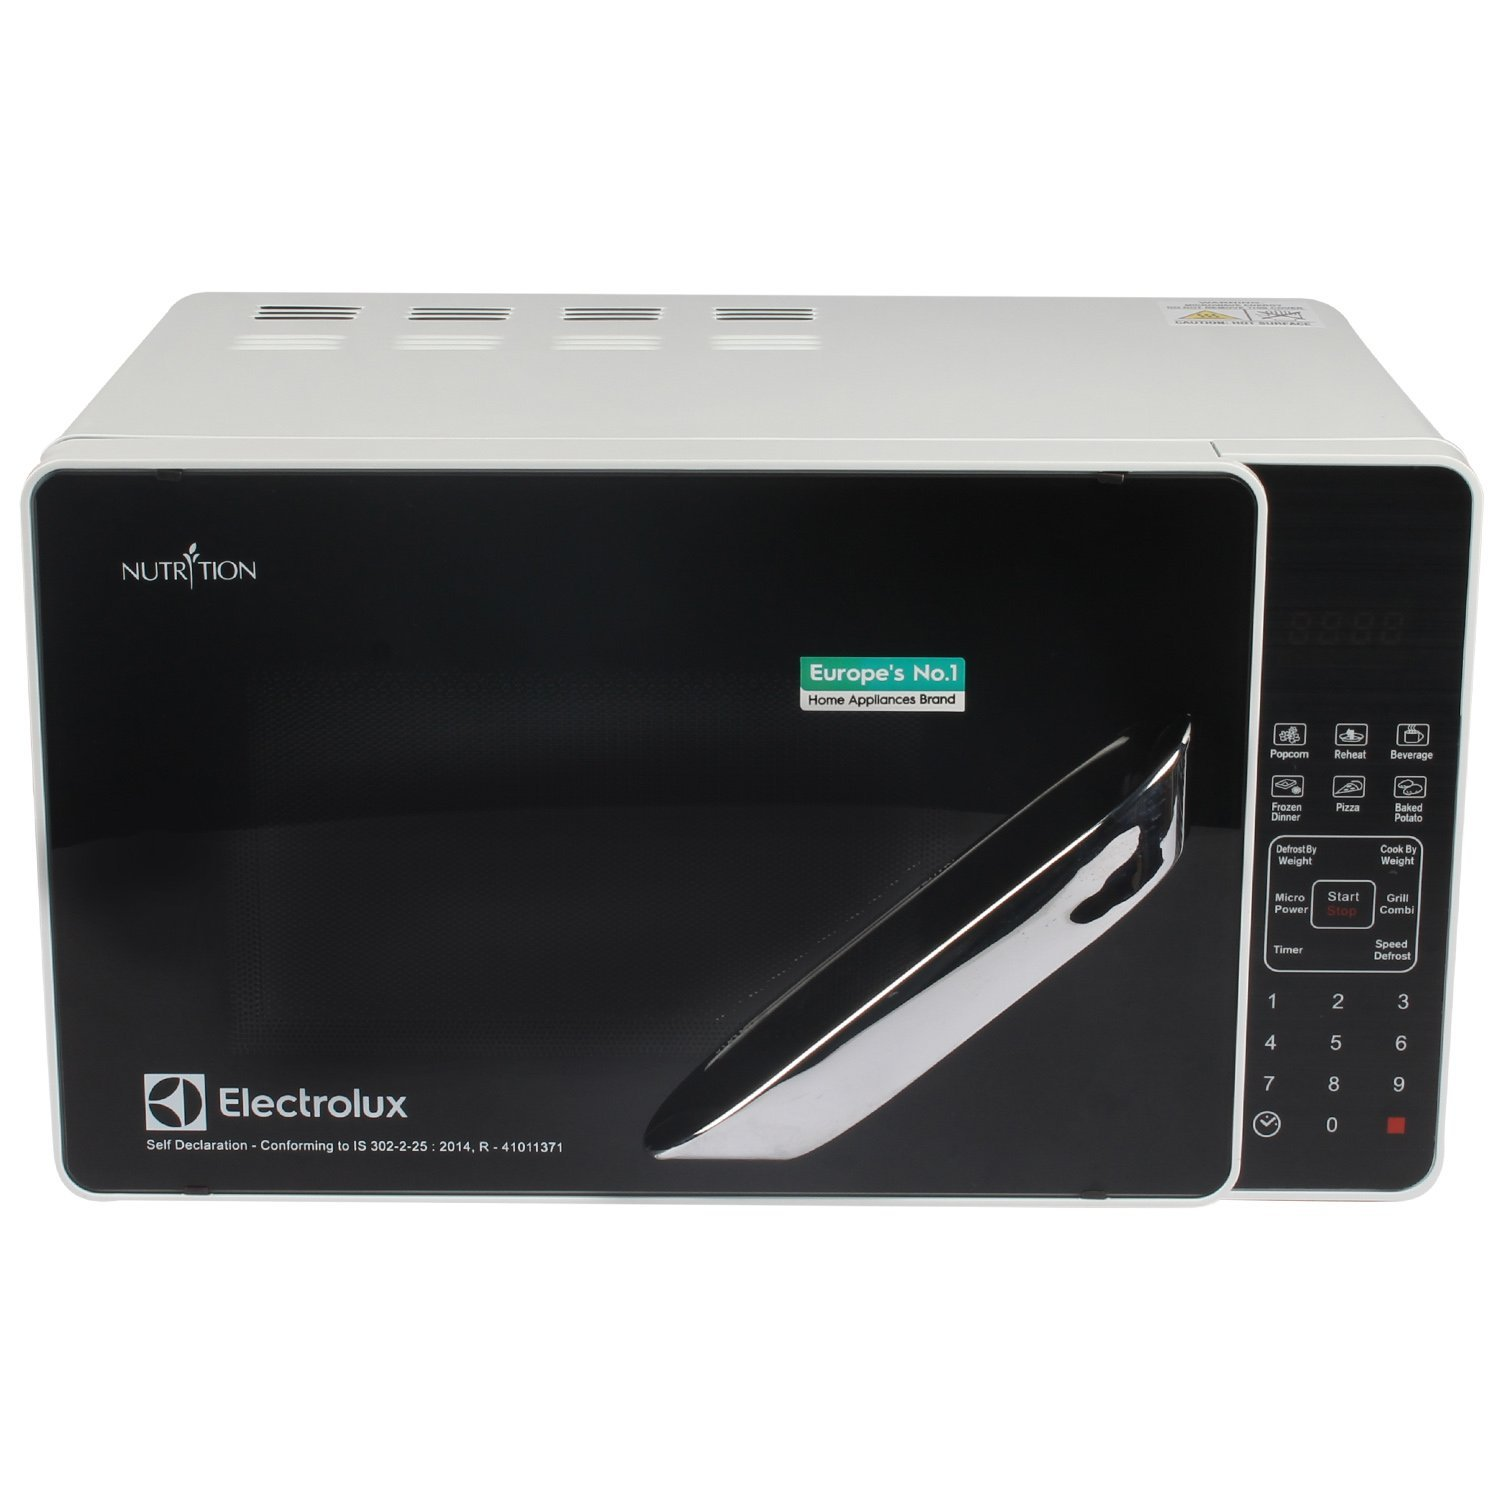 Electrolux 20 L Grill Microwave Oven (M/O G20K WB-CW, Black and Silver)